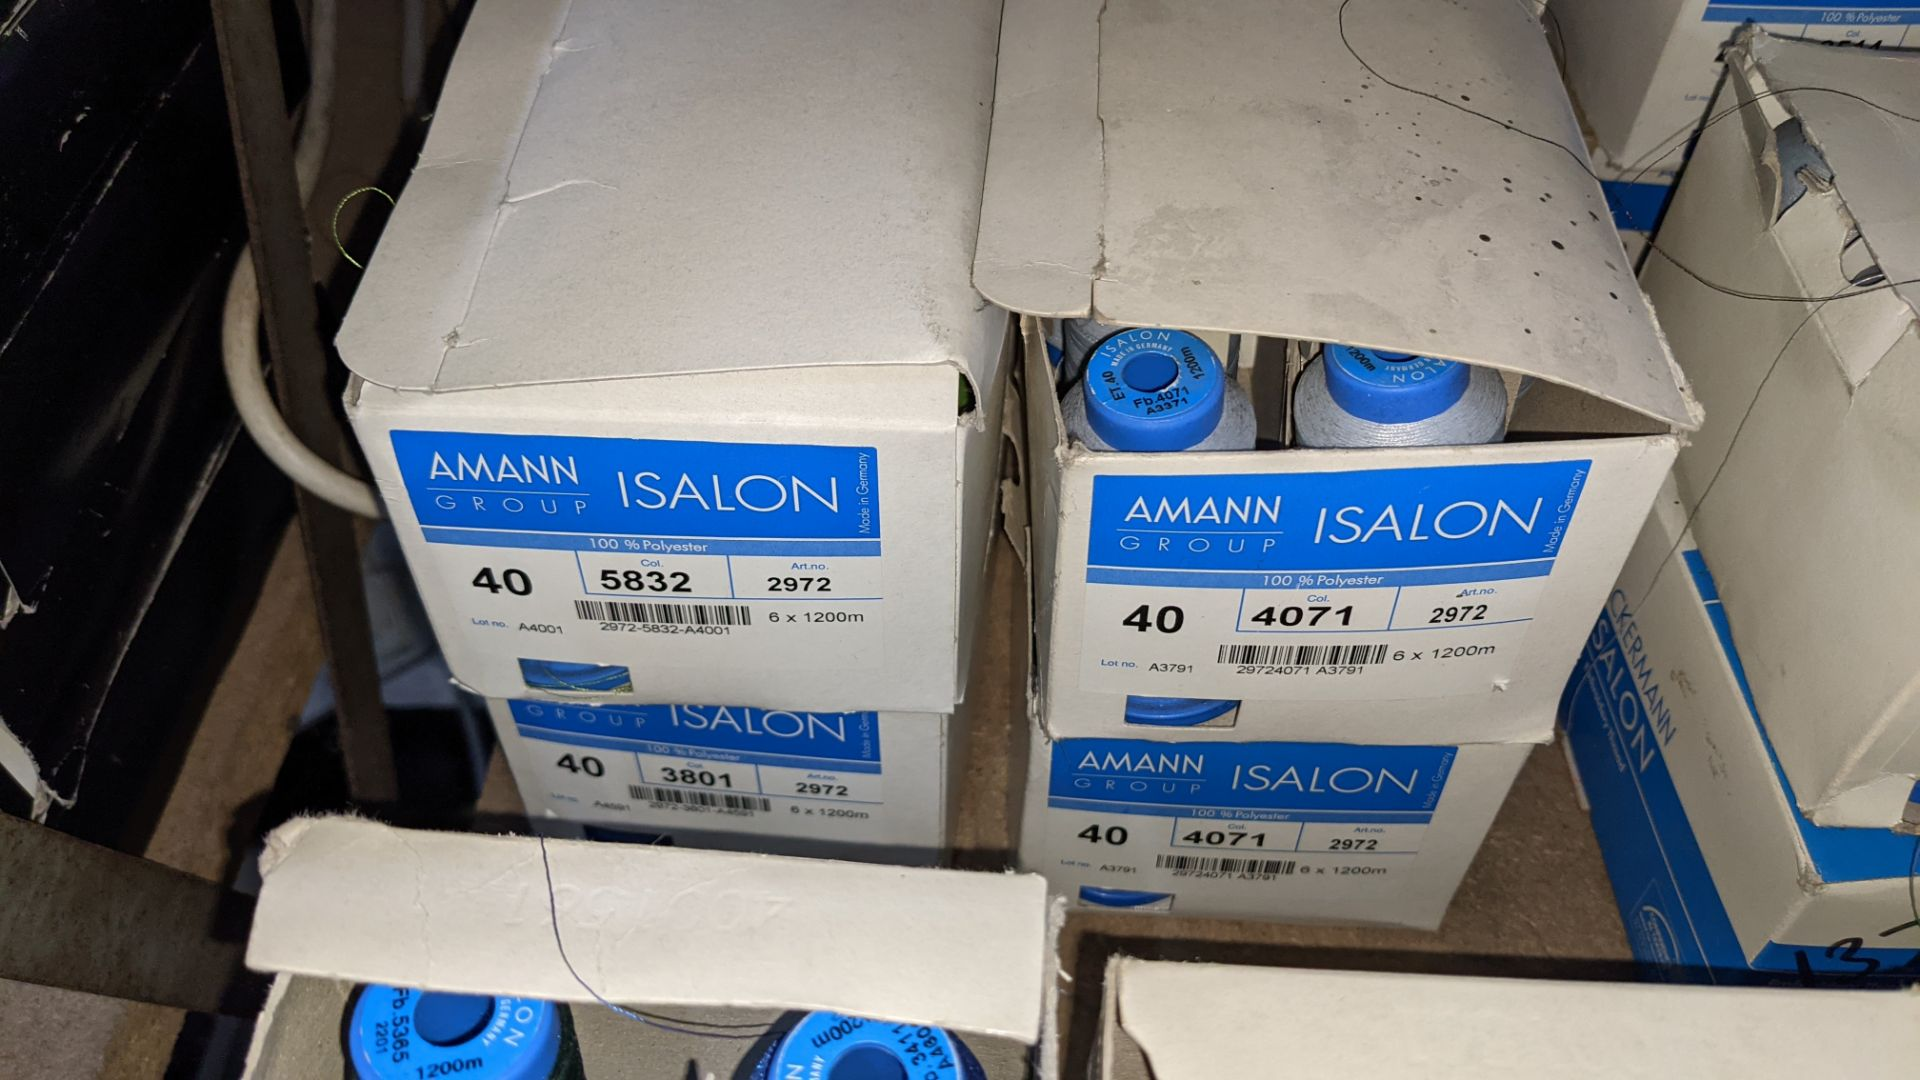 12 boxes of Amann Group ISALON embroidery thread - Image 4 of 6